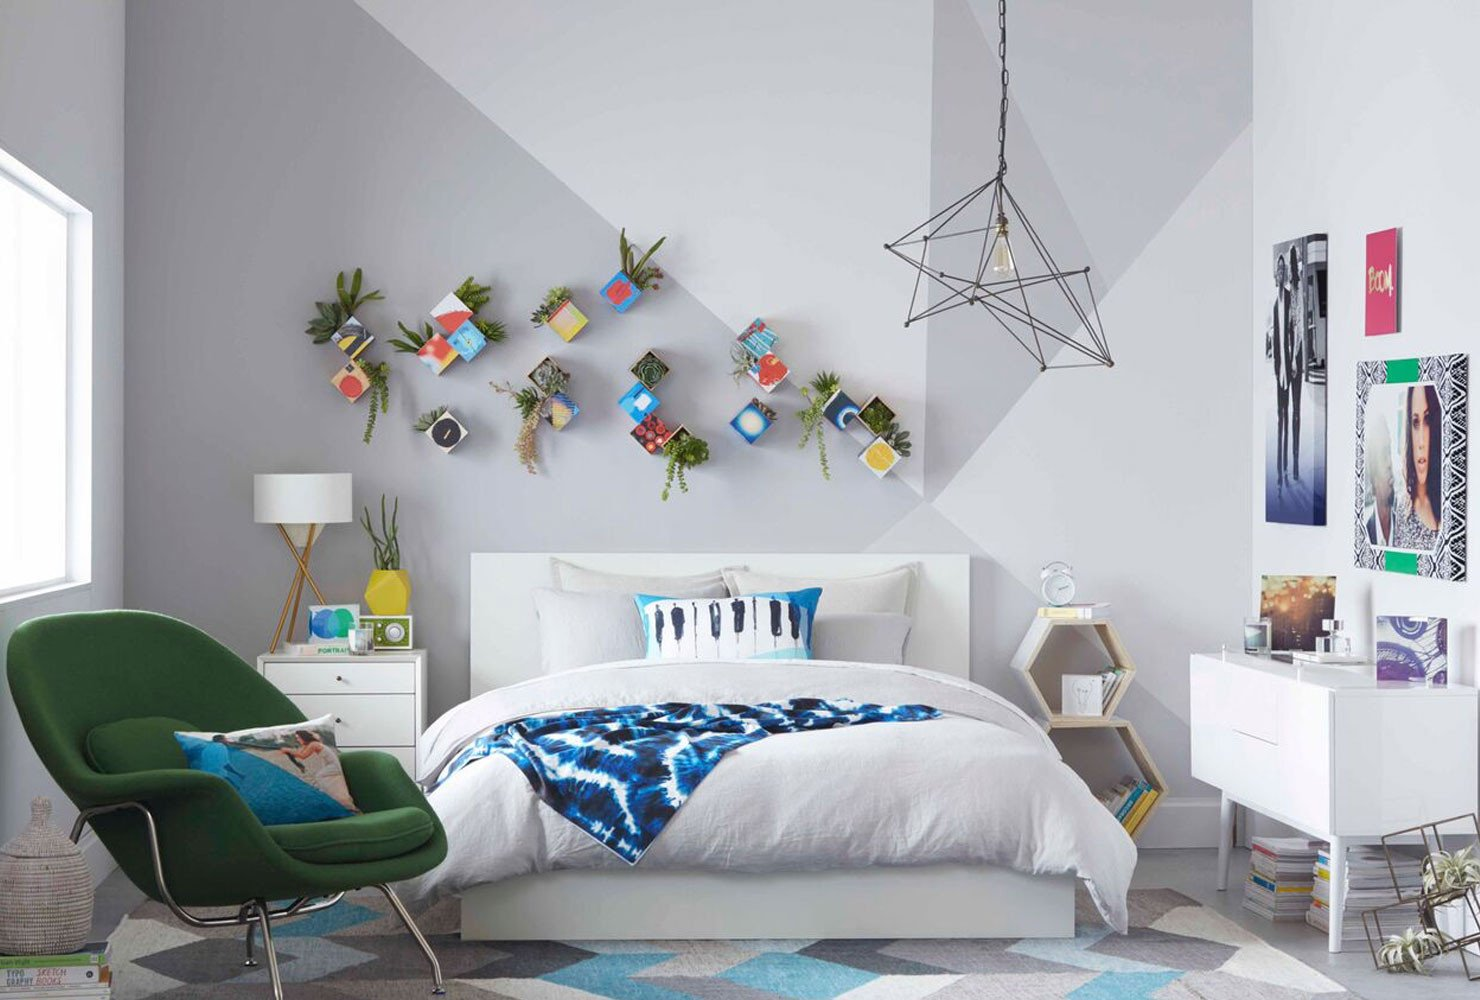 Diy Decor Ideas for Bedroom Beautiful 24 Diy Bedroom Decor Ideas to Inspire You with Printables